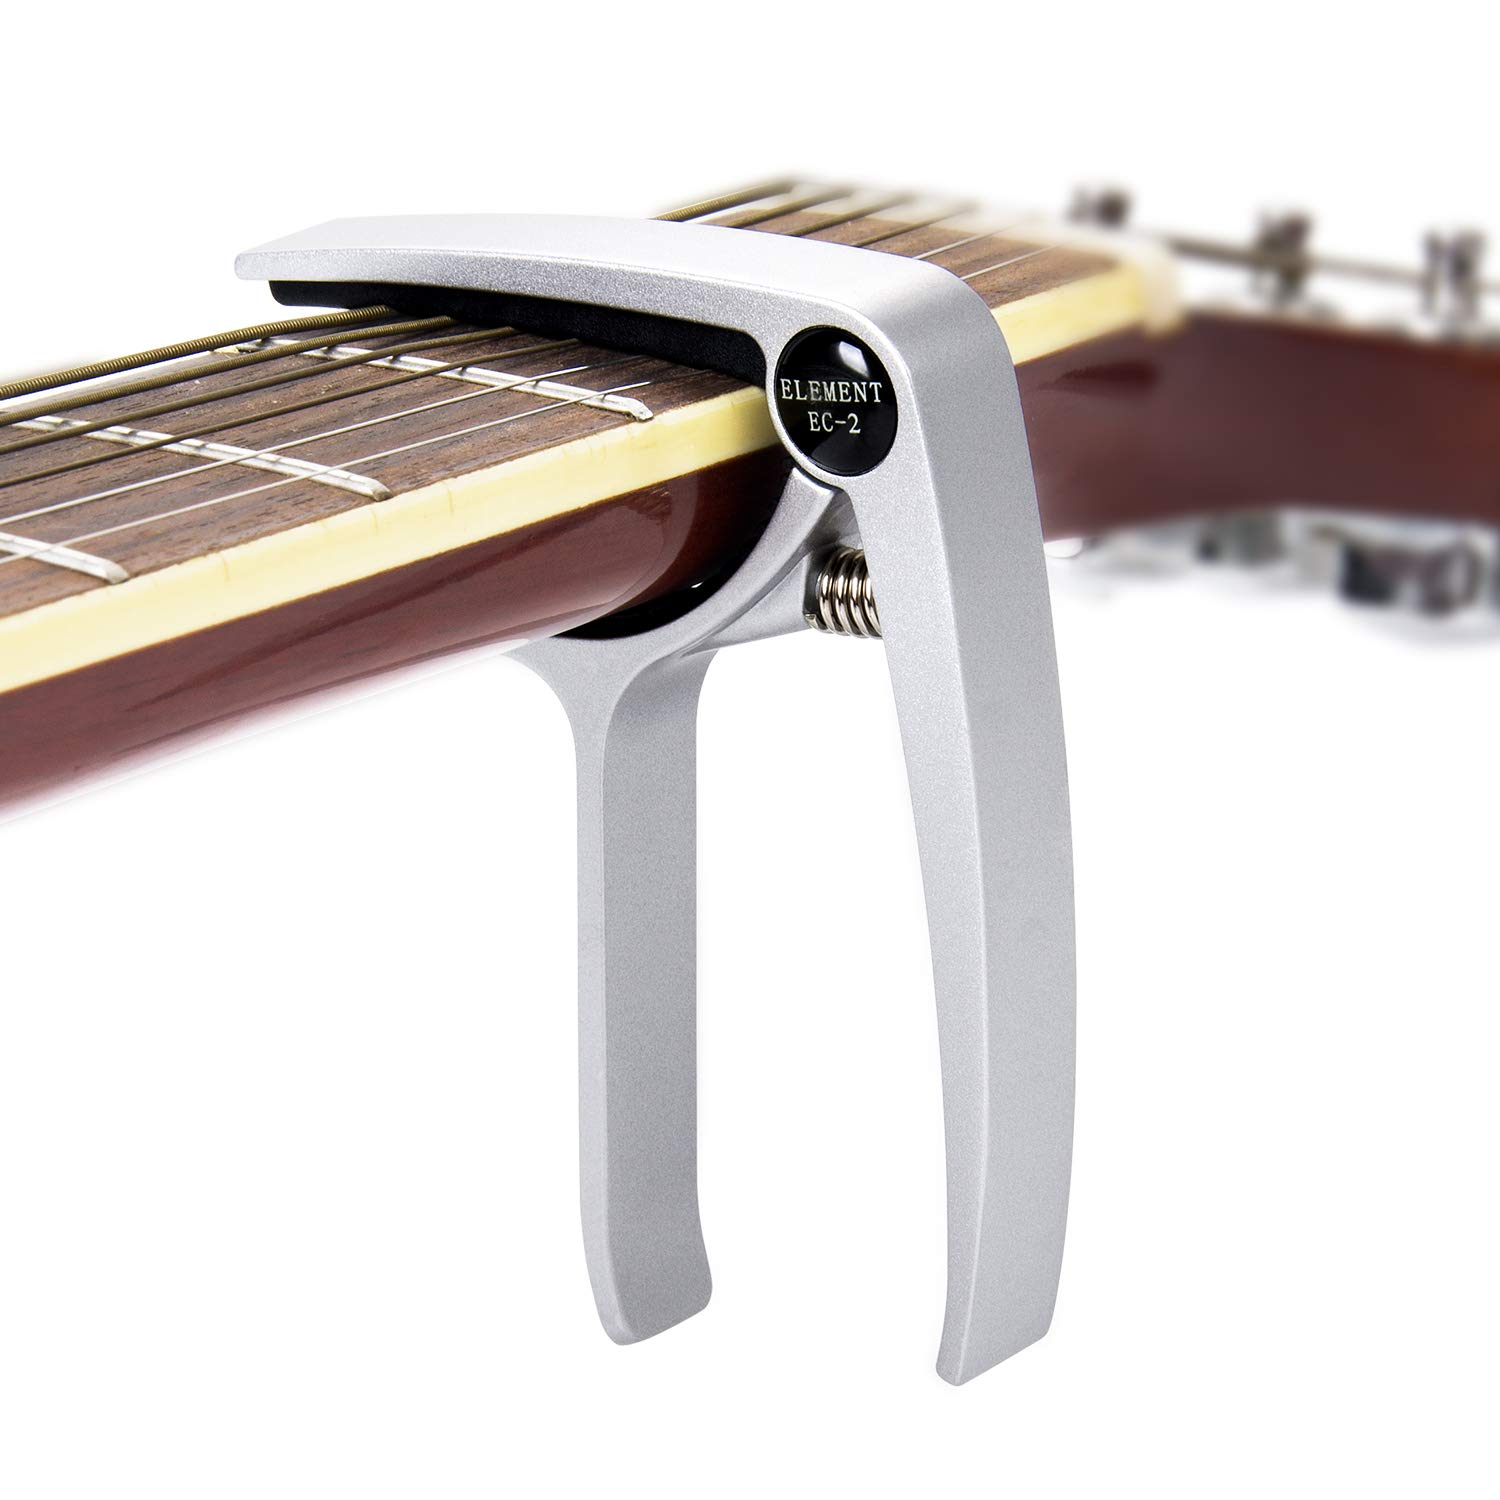 DigitalLife Clamp Guitar Capo for 6-String Acoustic, Electric, Bass Guitar and Ukulele (Zinc Alloy Material, Silver)